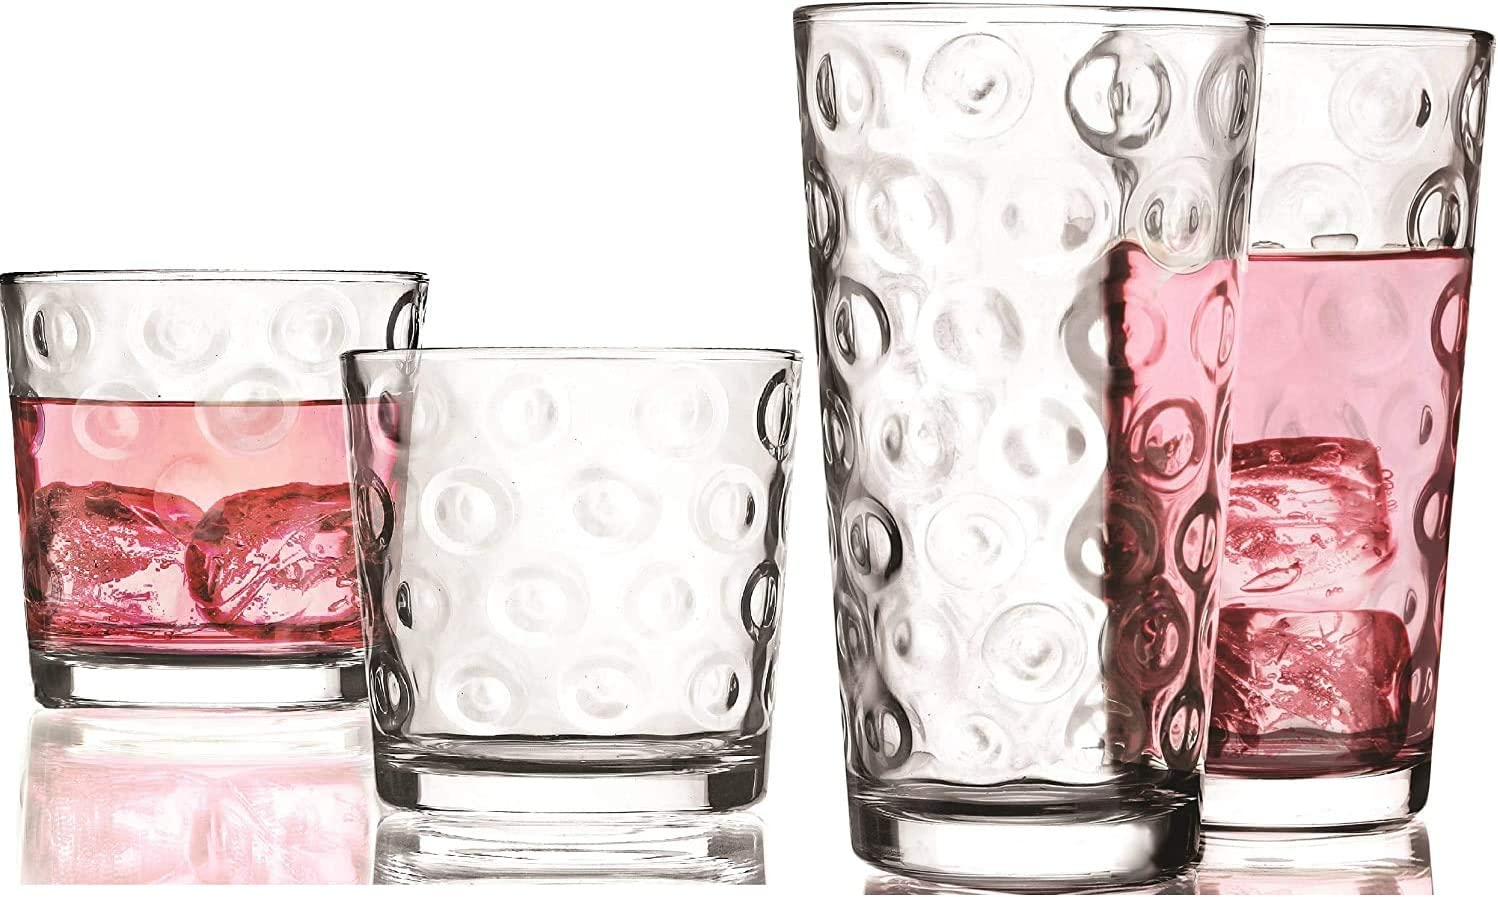 Circleware DoubleCircle Huge 16-Piece Glassware Set of Highball Tumbler Drinking Glasses and Whiskey Cups for Water, Beer, Juice, Ice Tea Beverages, 8-15.75 oz & 8-12.5 oz, Circles